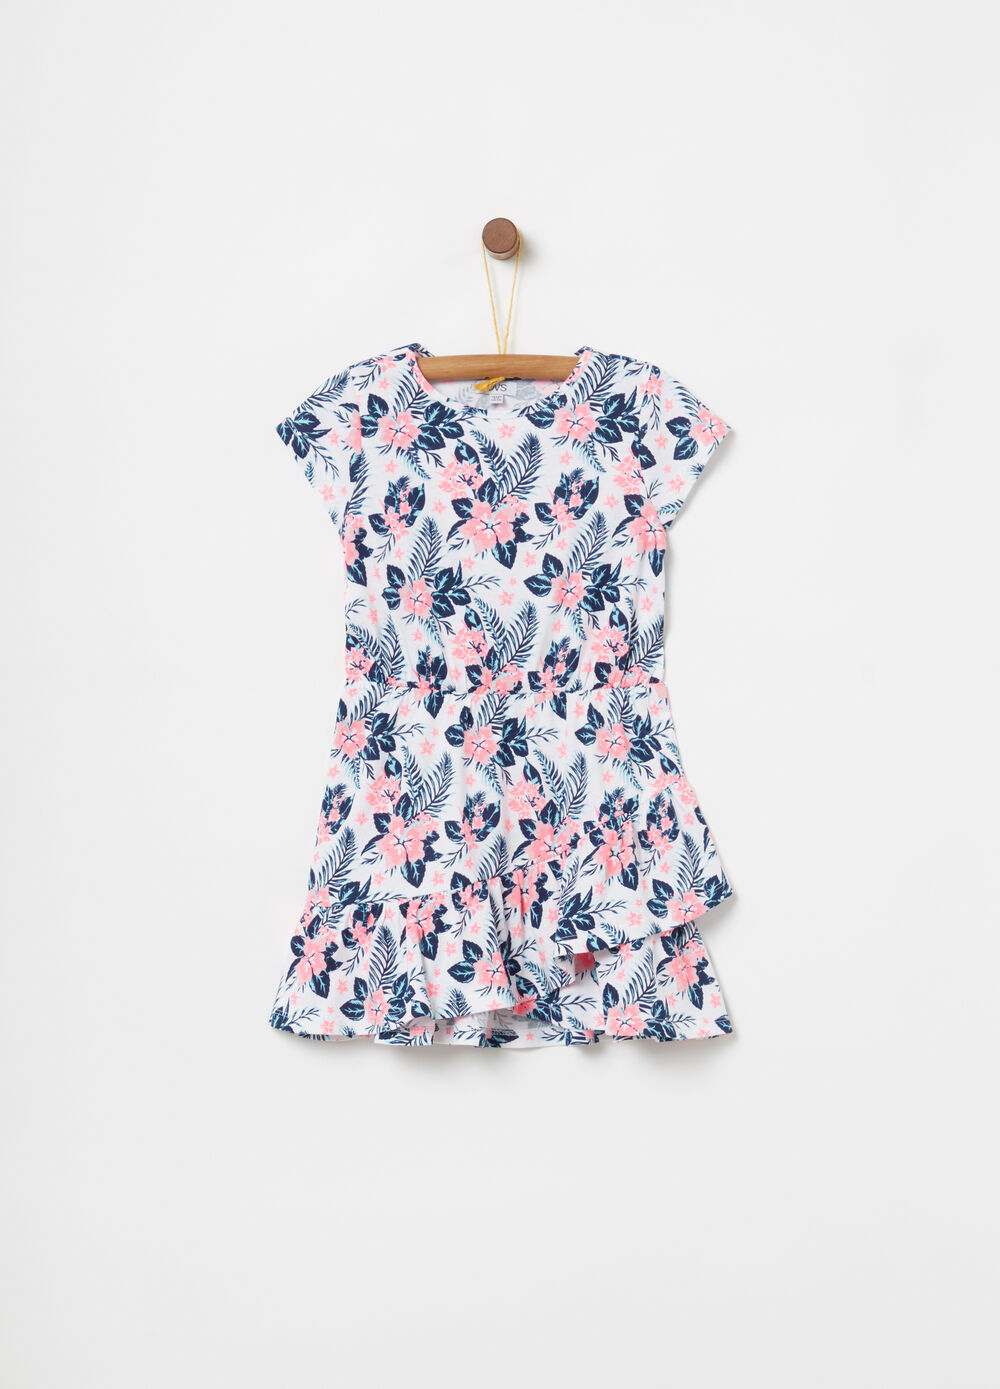 Dress with frills and floral pattern